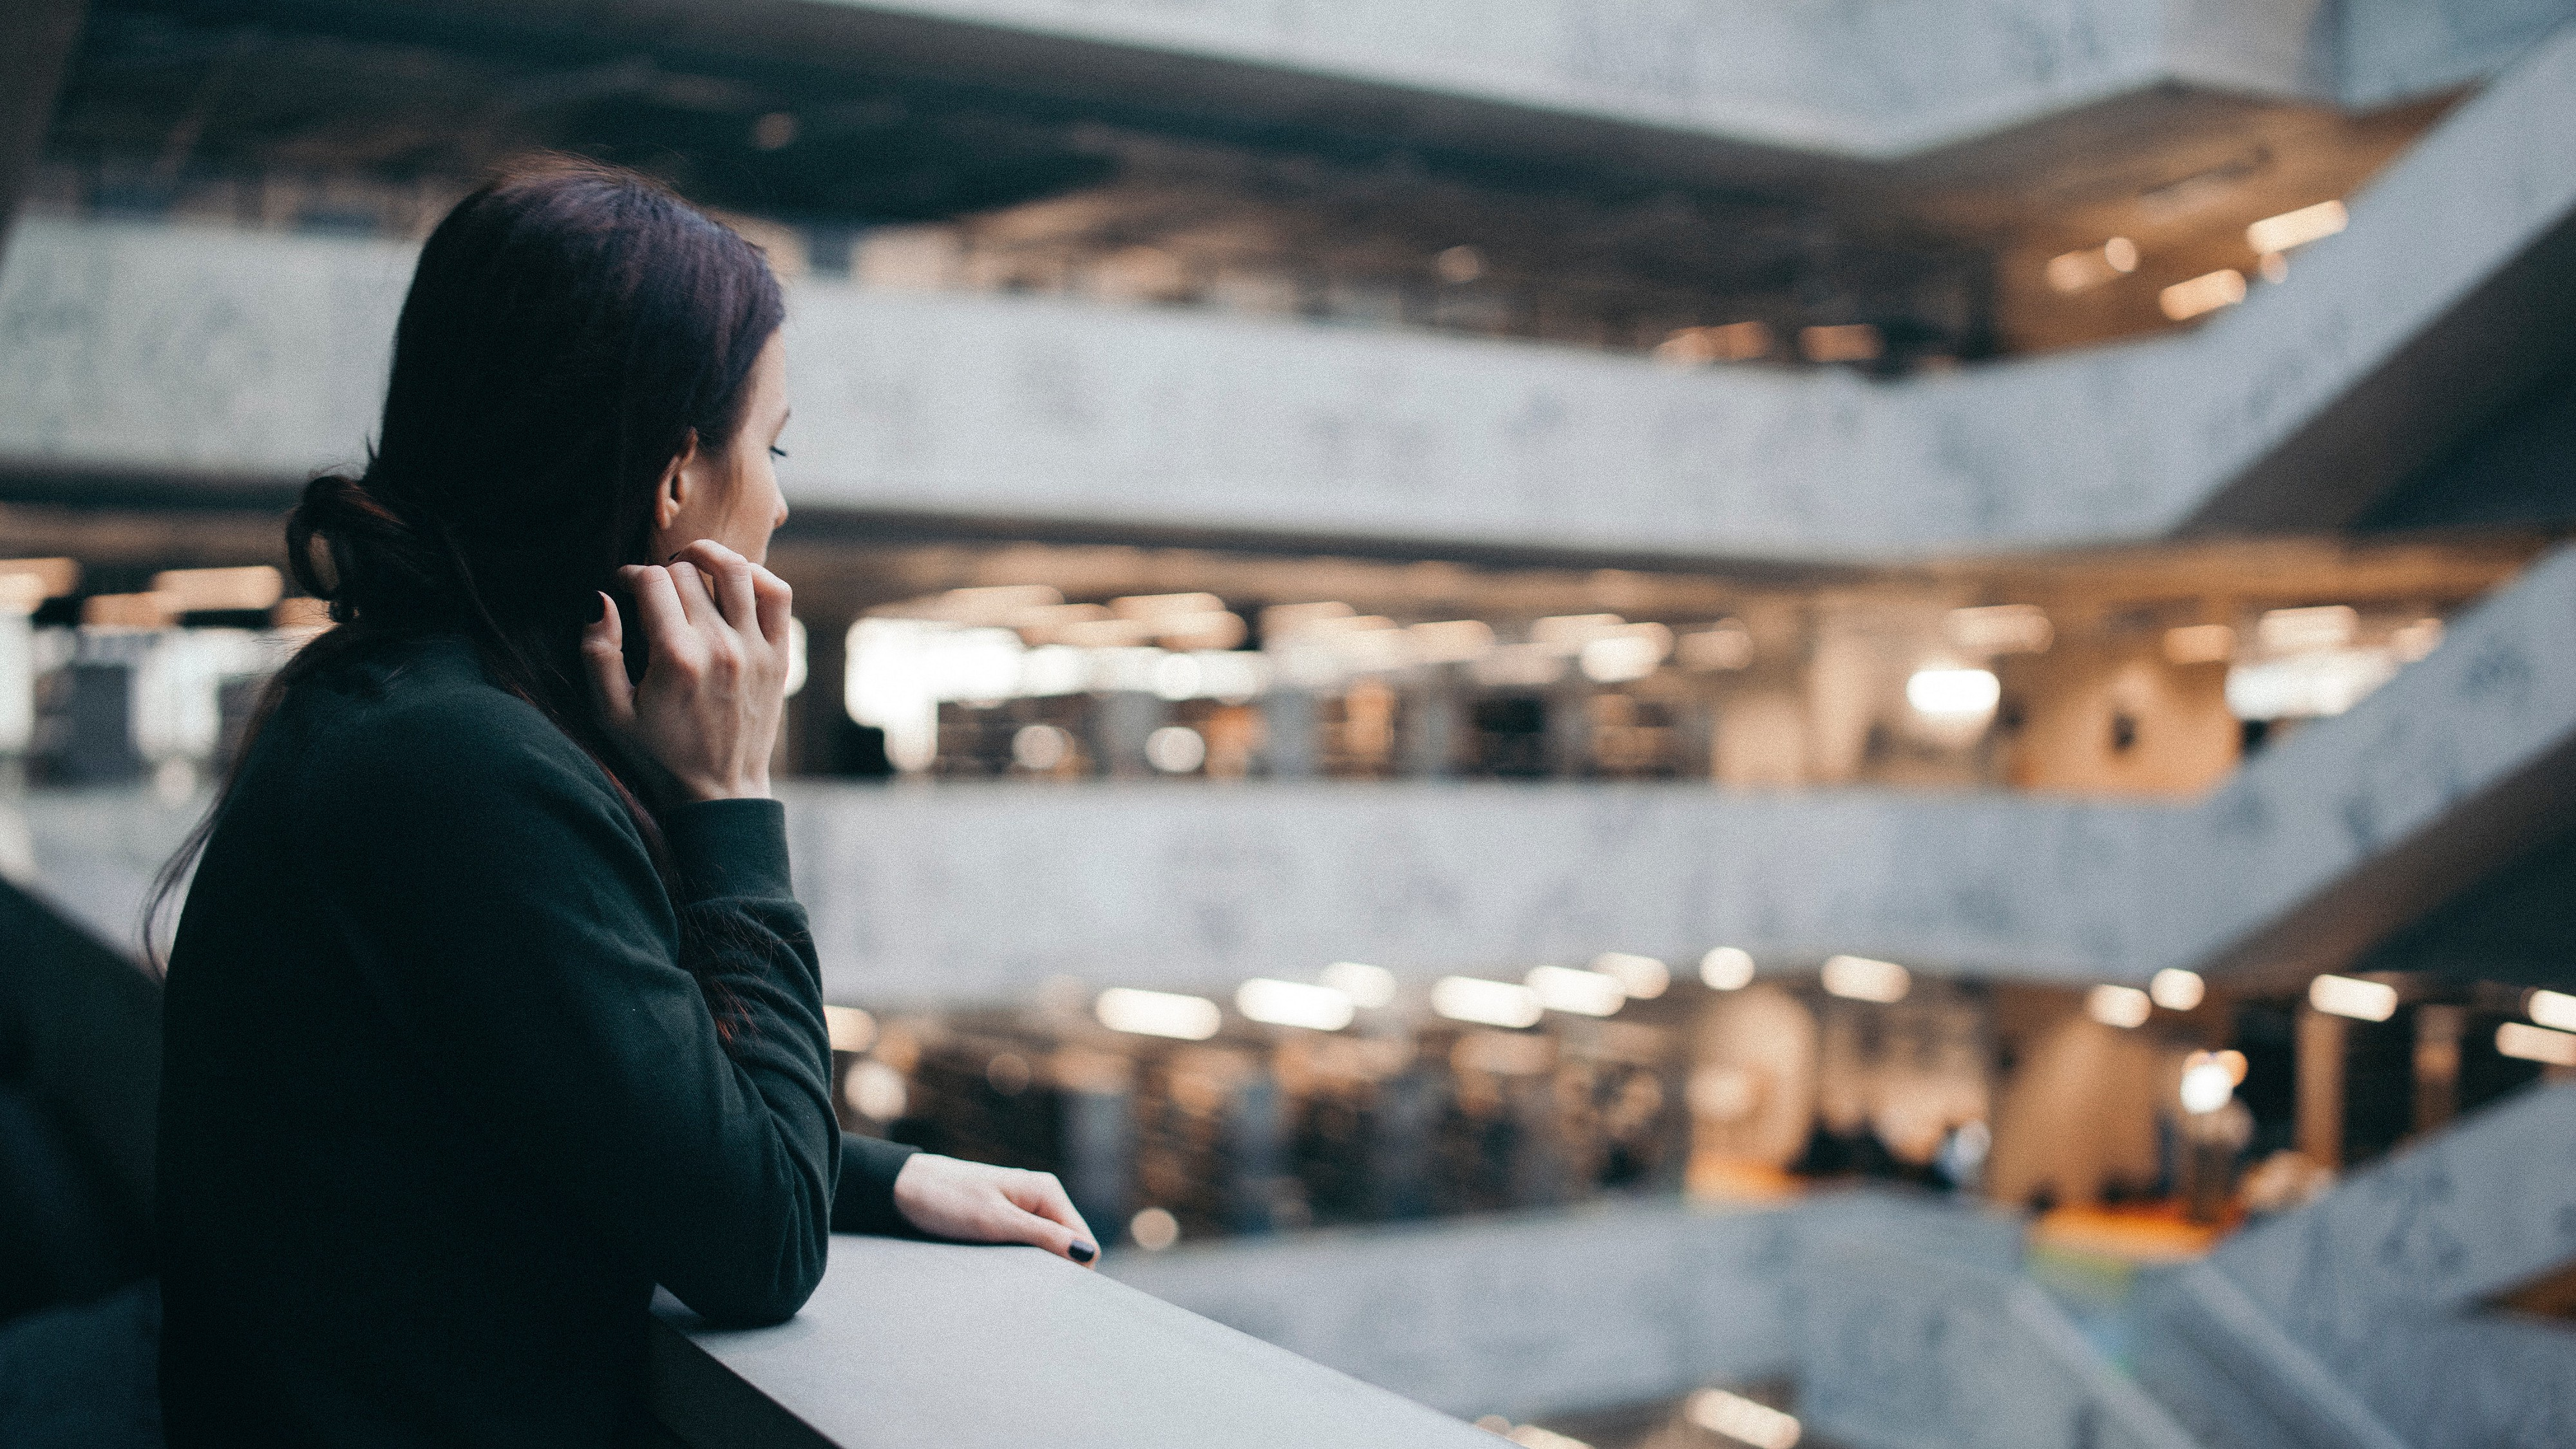 Woman looking out over the atrium of a building